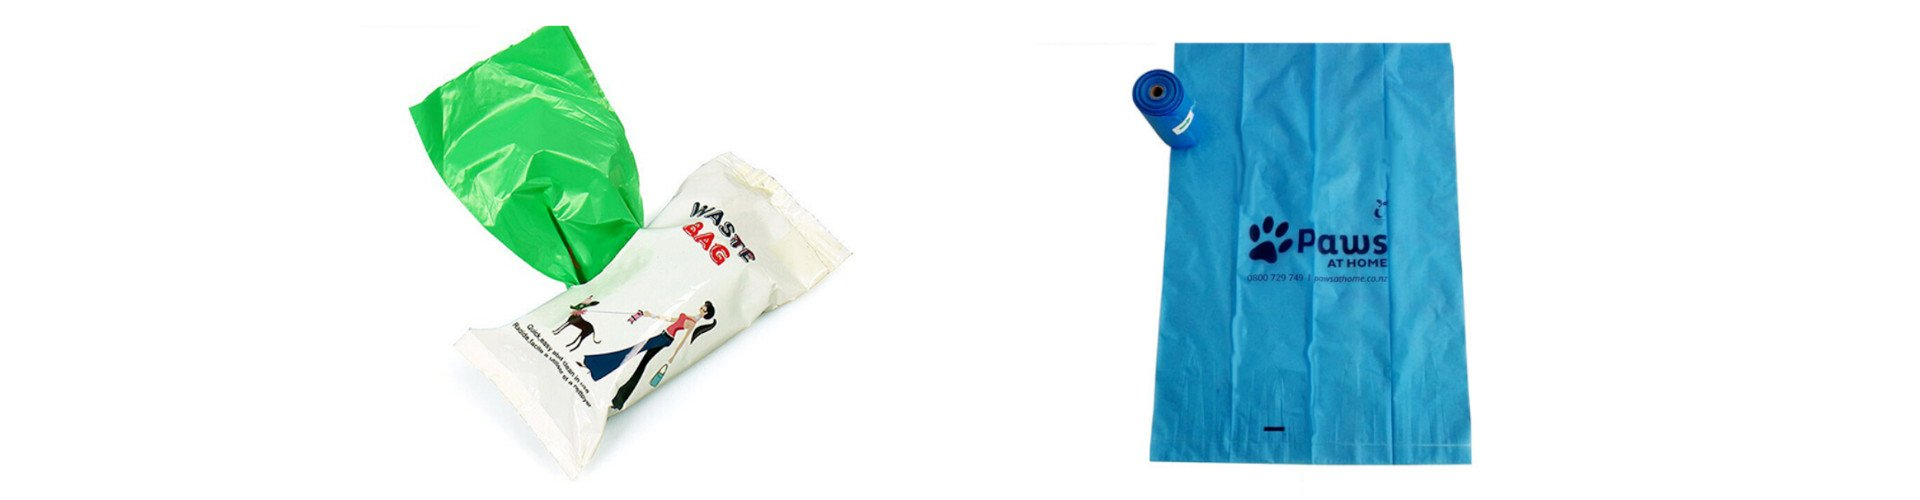 Two dog poo bags